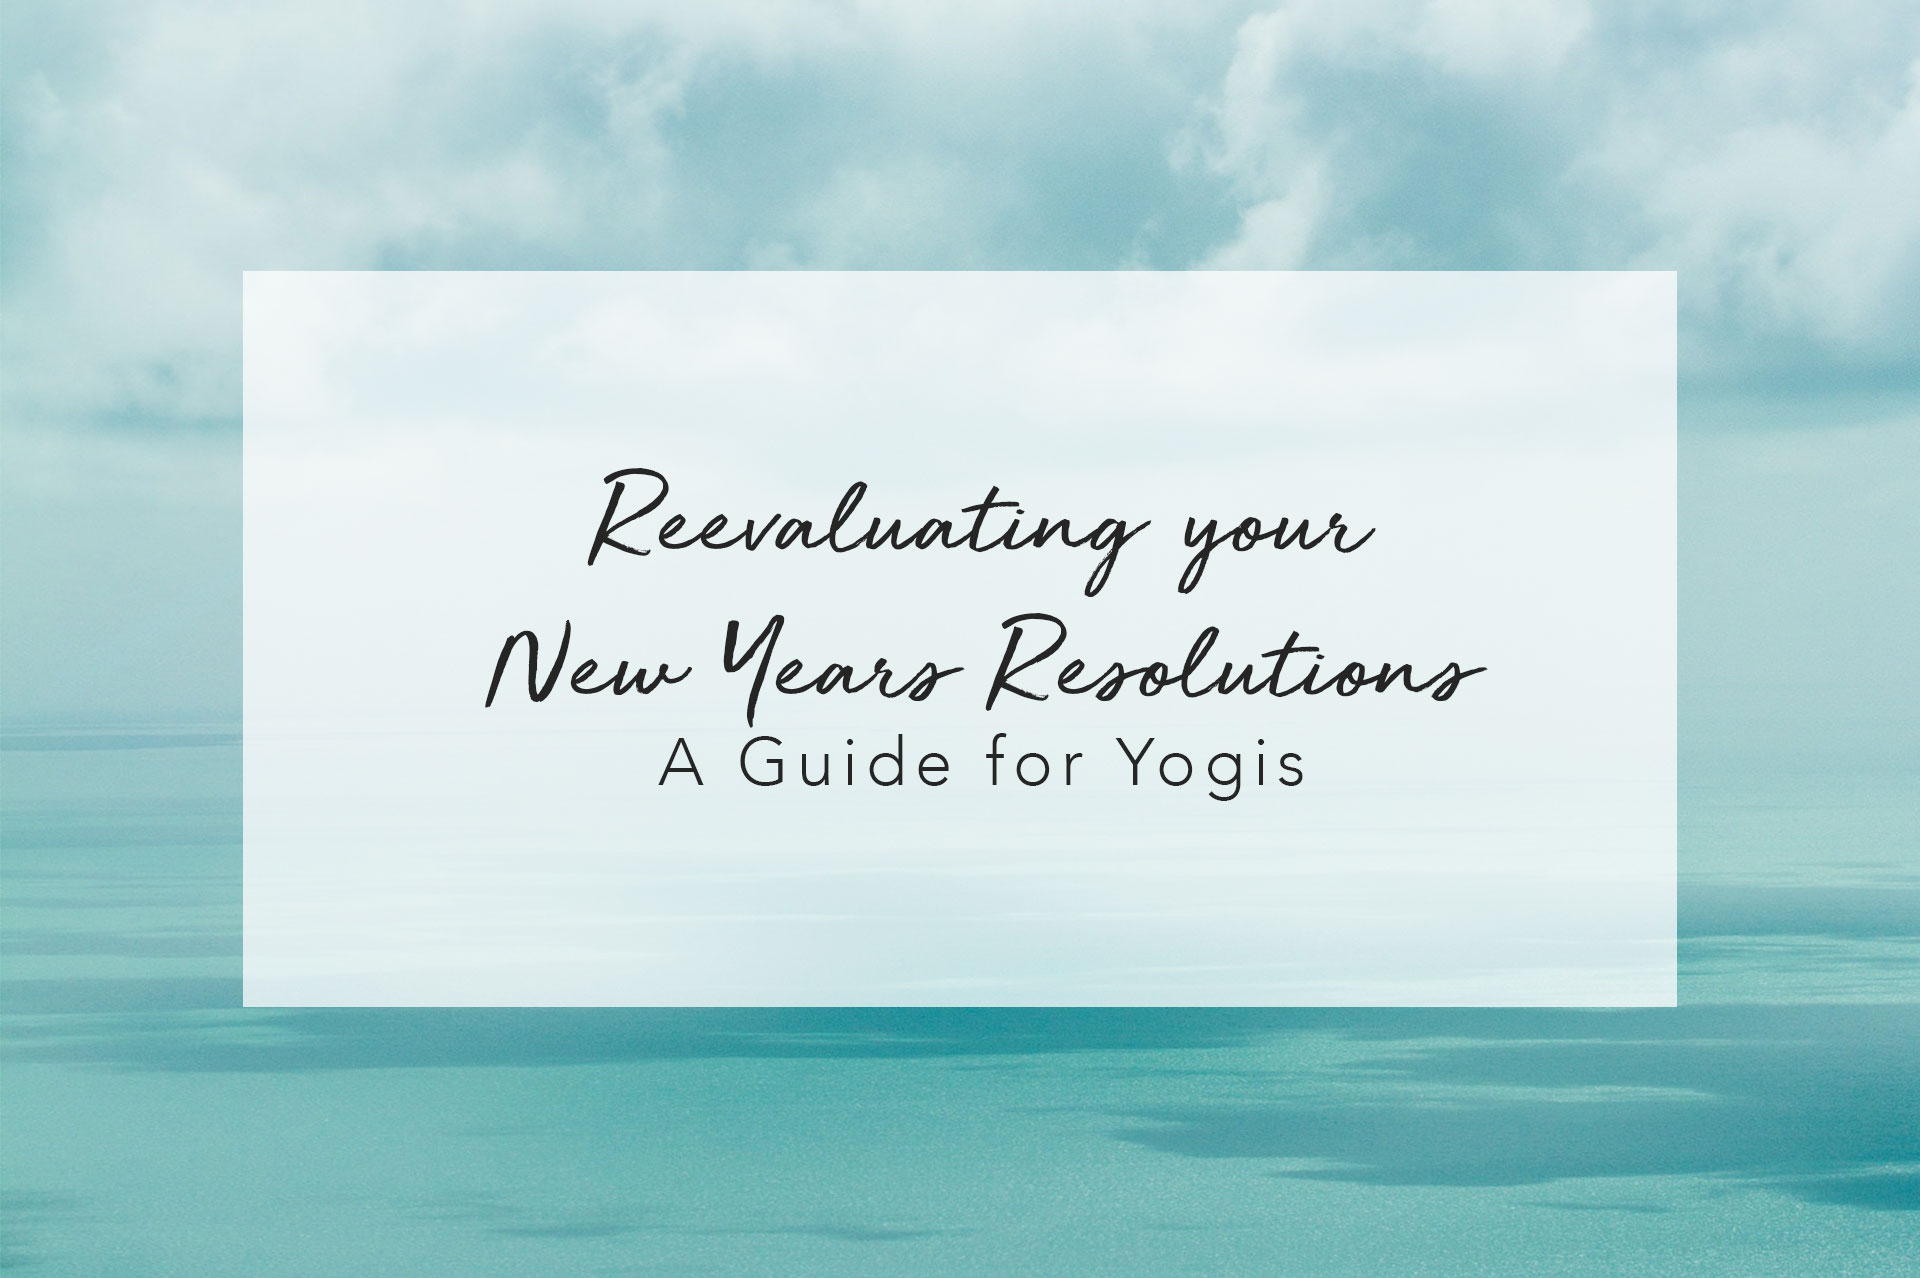 Reevaluating your New Years Resolutions – A Guide for Yogis